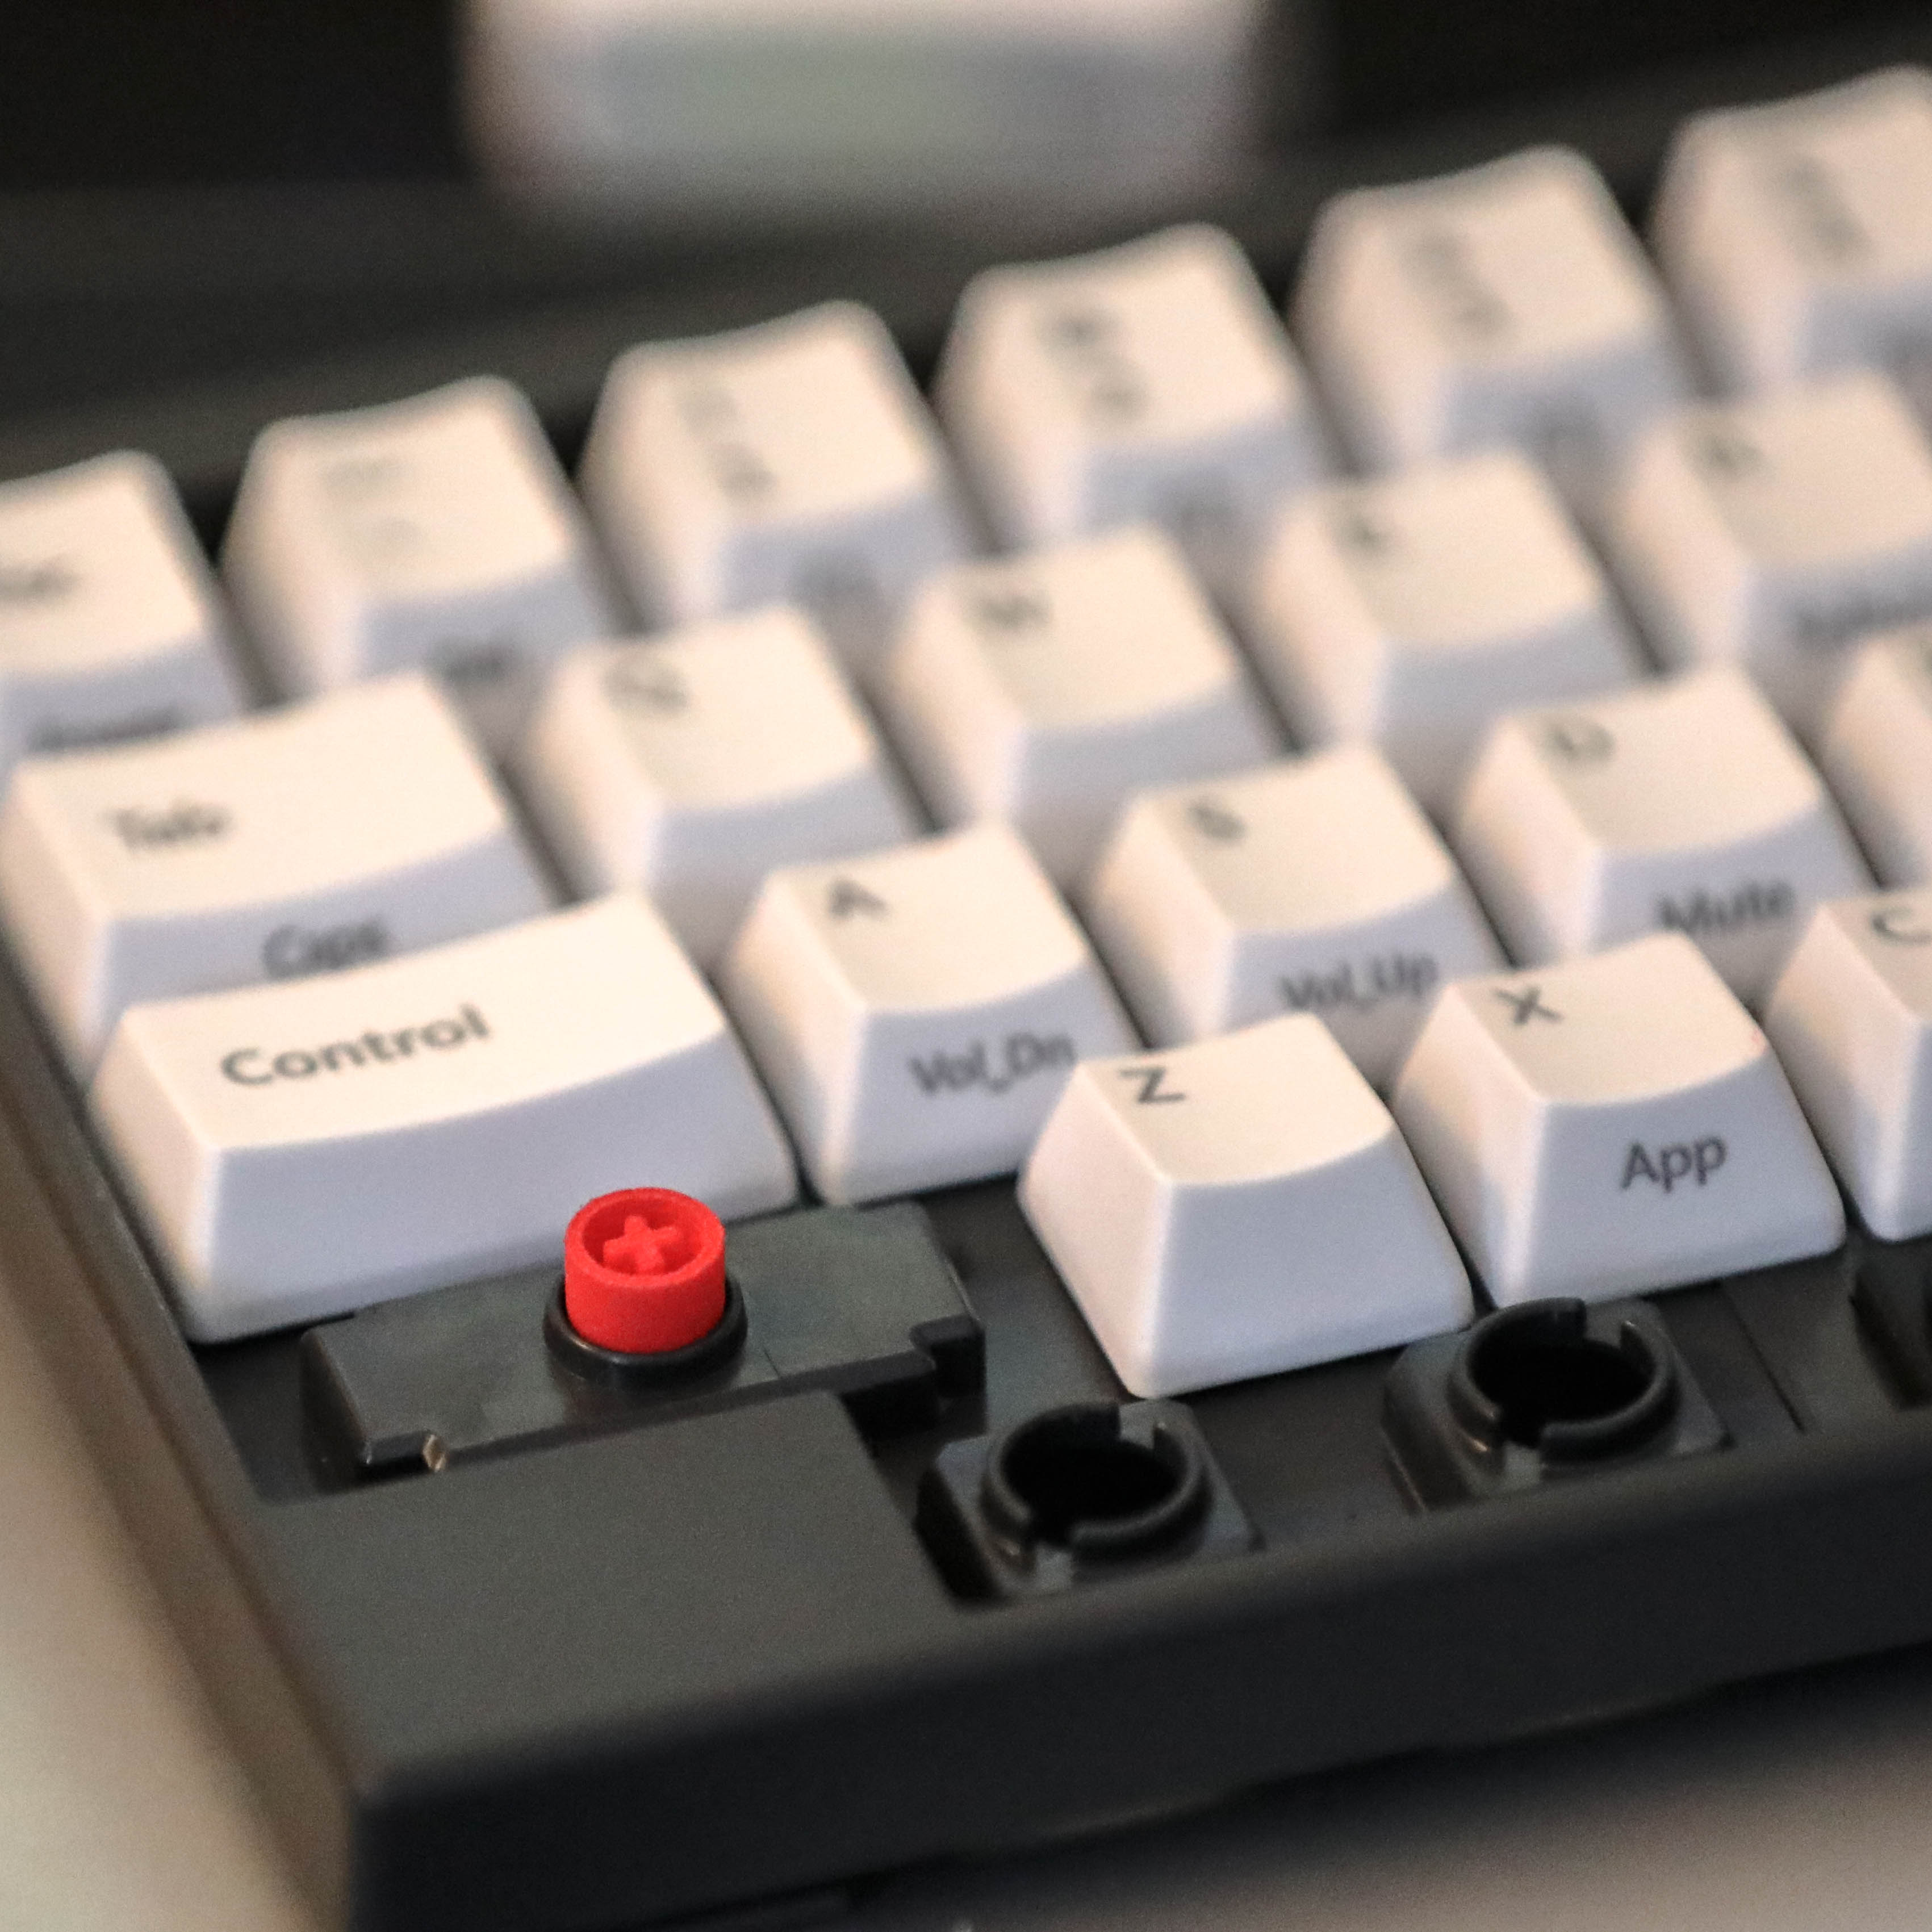 Hhkb Topre To Cherry Mx Adapter Open Source